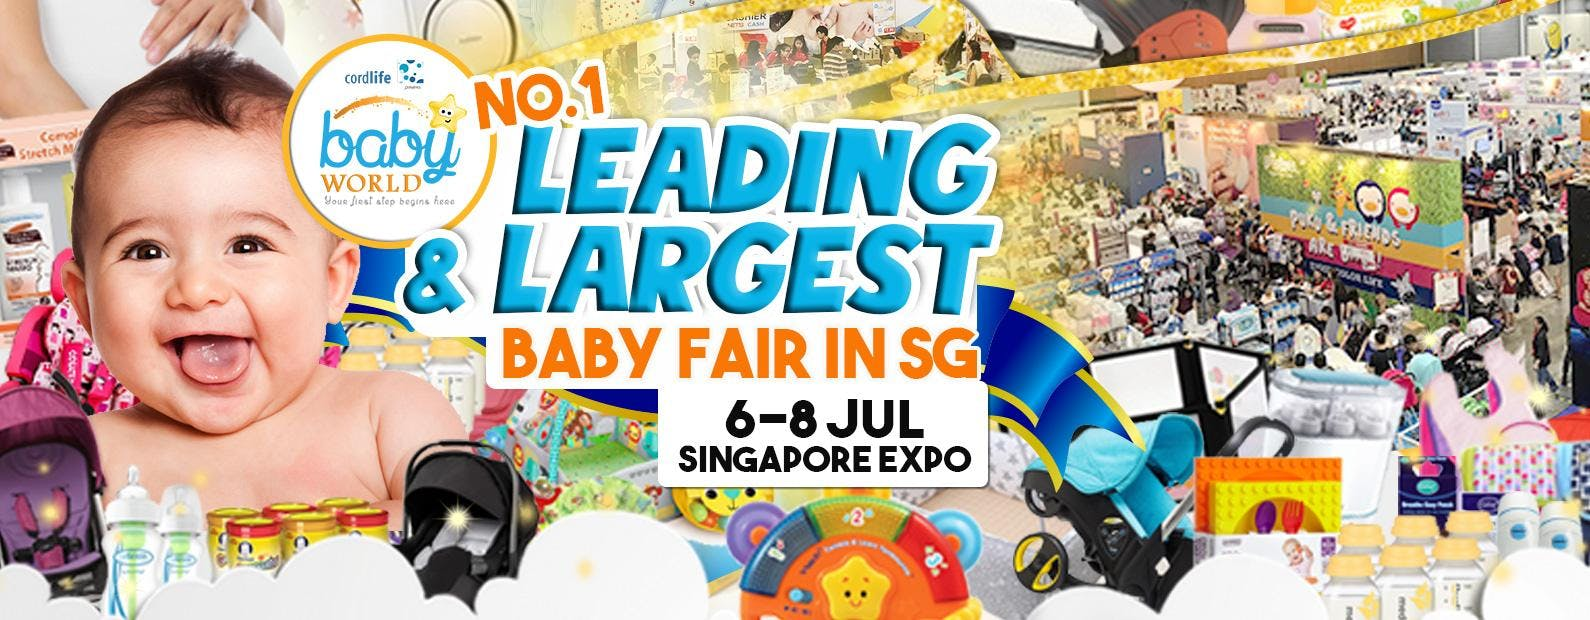 Baby Fair - Baby World 6 to 8 July 2018 at Singapore Expo Hall 5